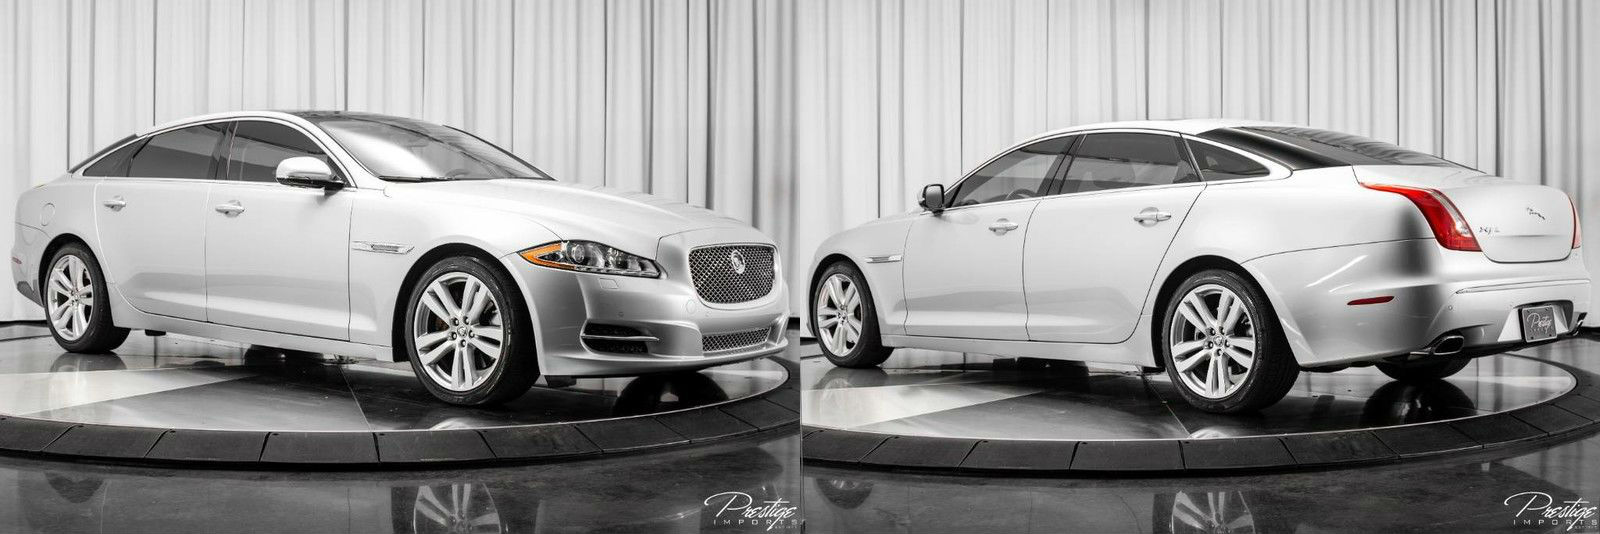 2011 Jaguar XJL For Sale North Miami Beach FL